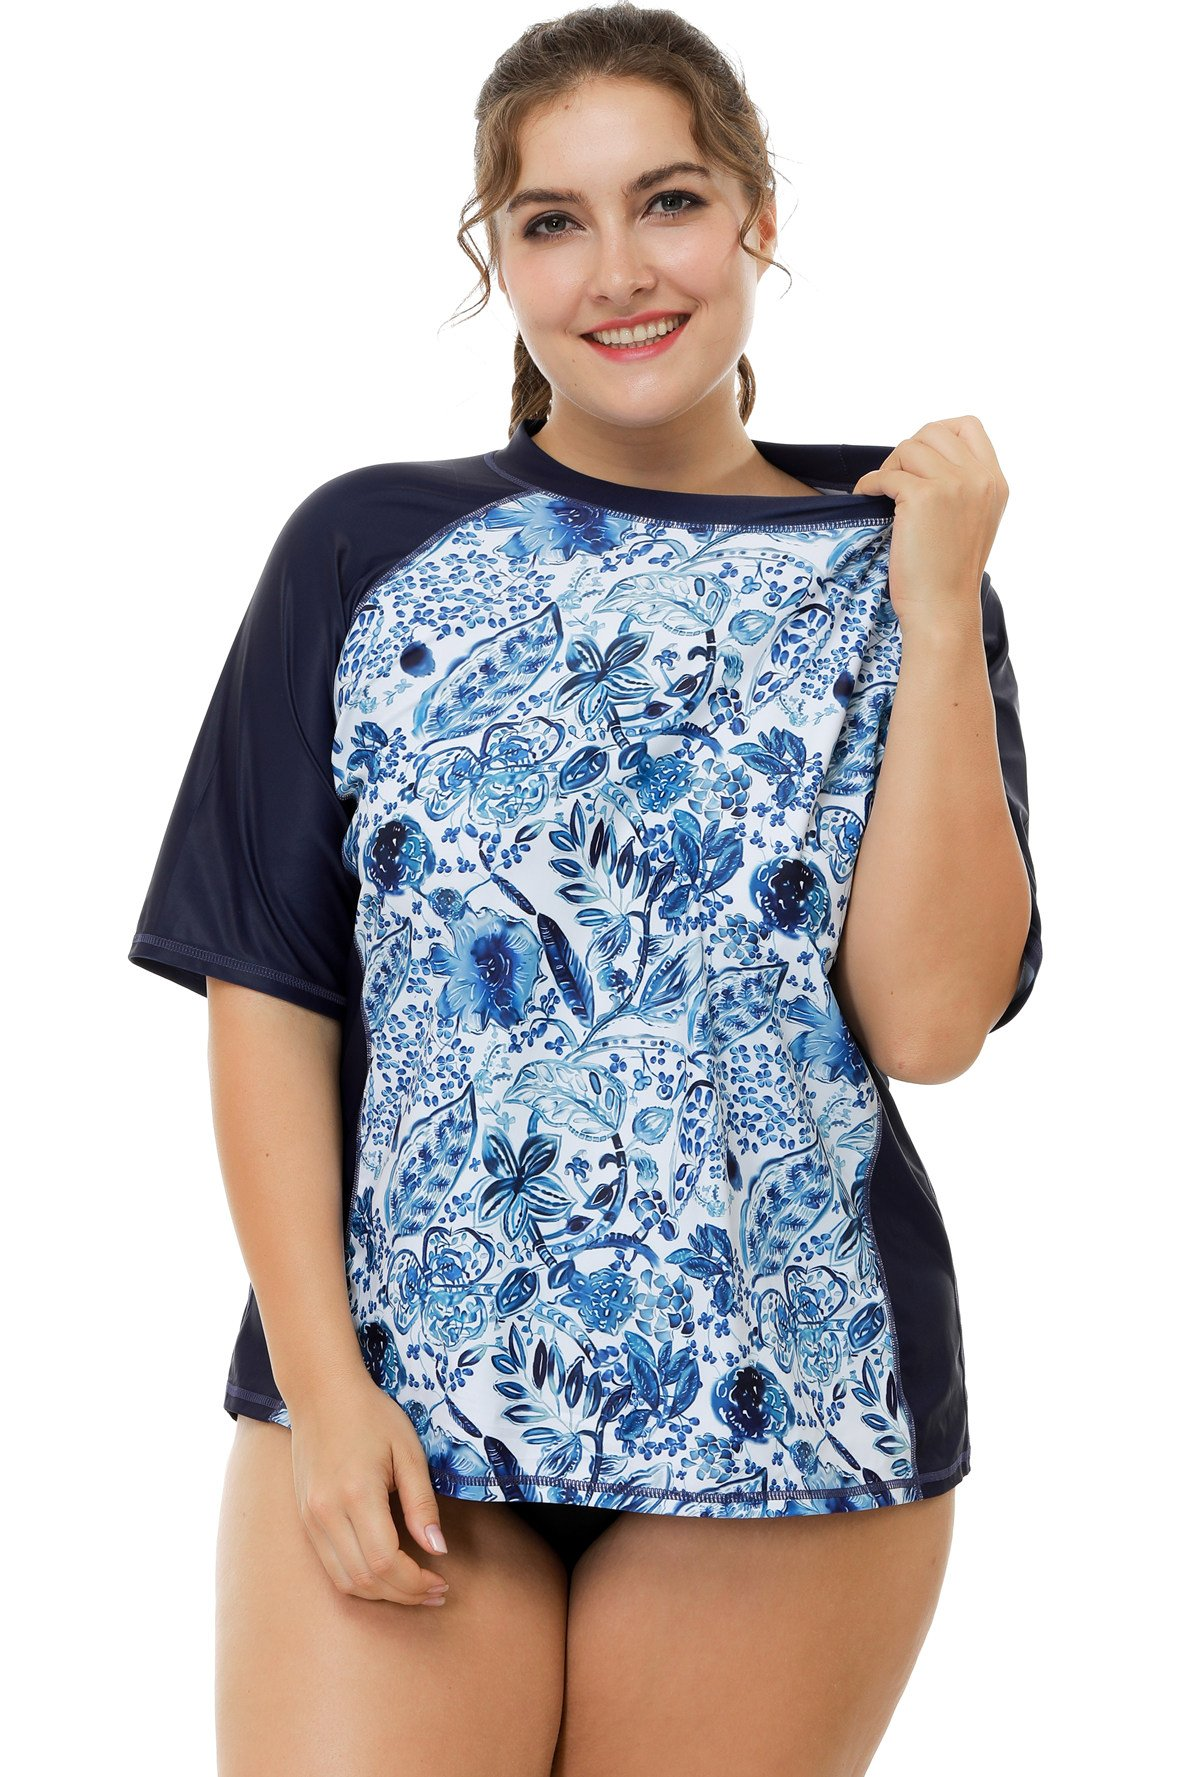 ATTRACO Ladies Plus Size Rashguard UPF Swim Tops uv Shirt Short Sleeve Navy 2X by ATTRACO